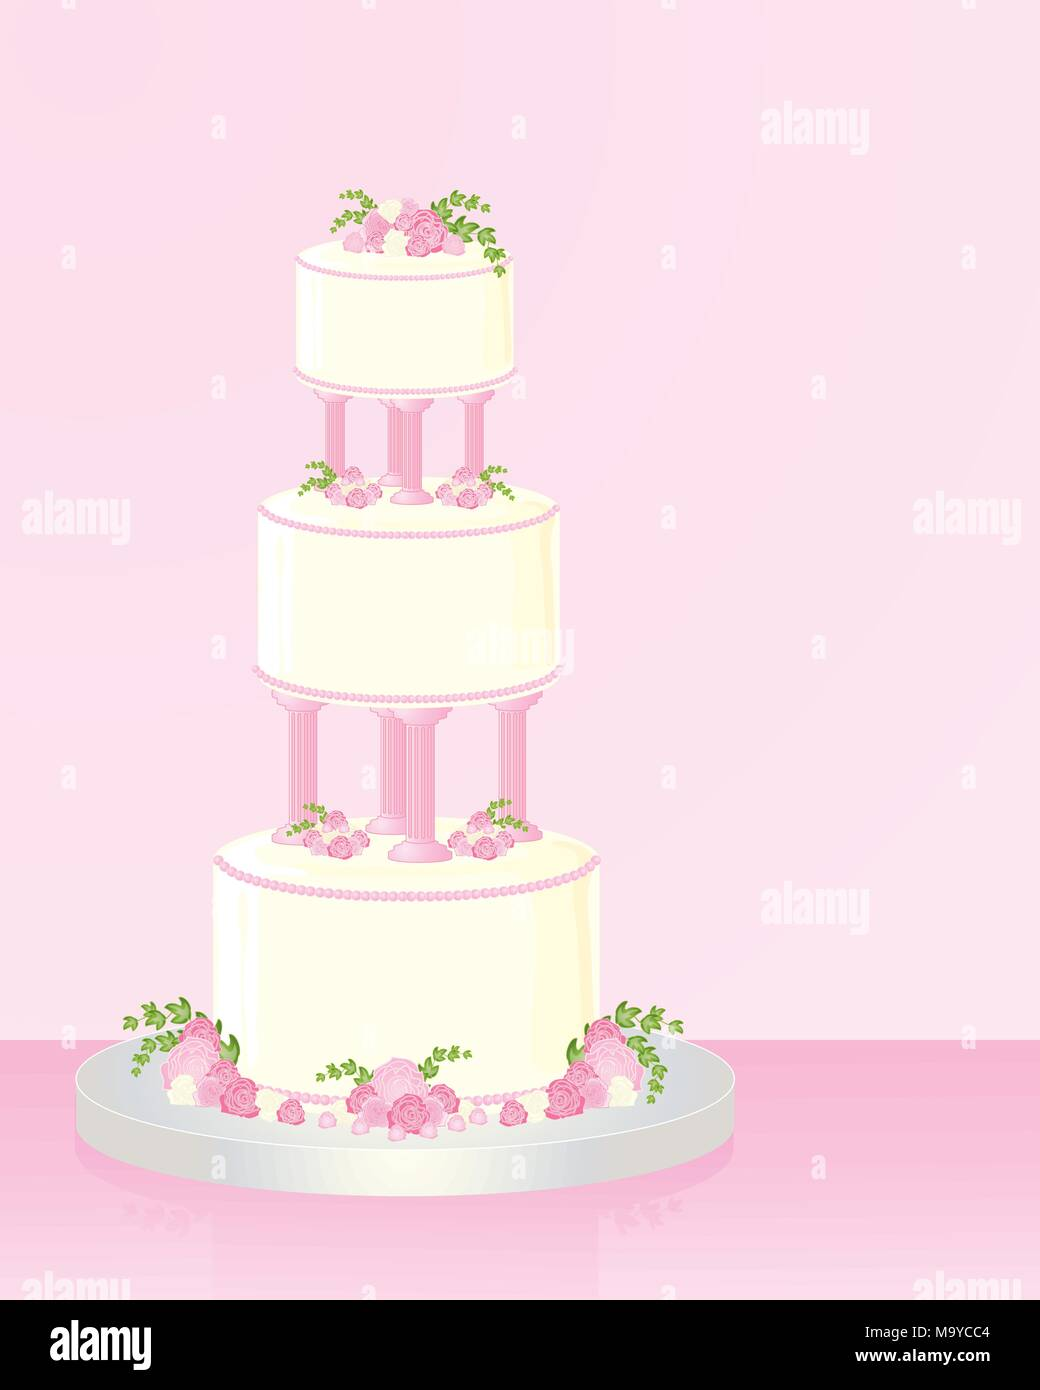 an illustration of a decorative three tier wedding cake with roses ...